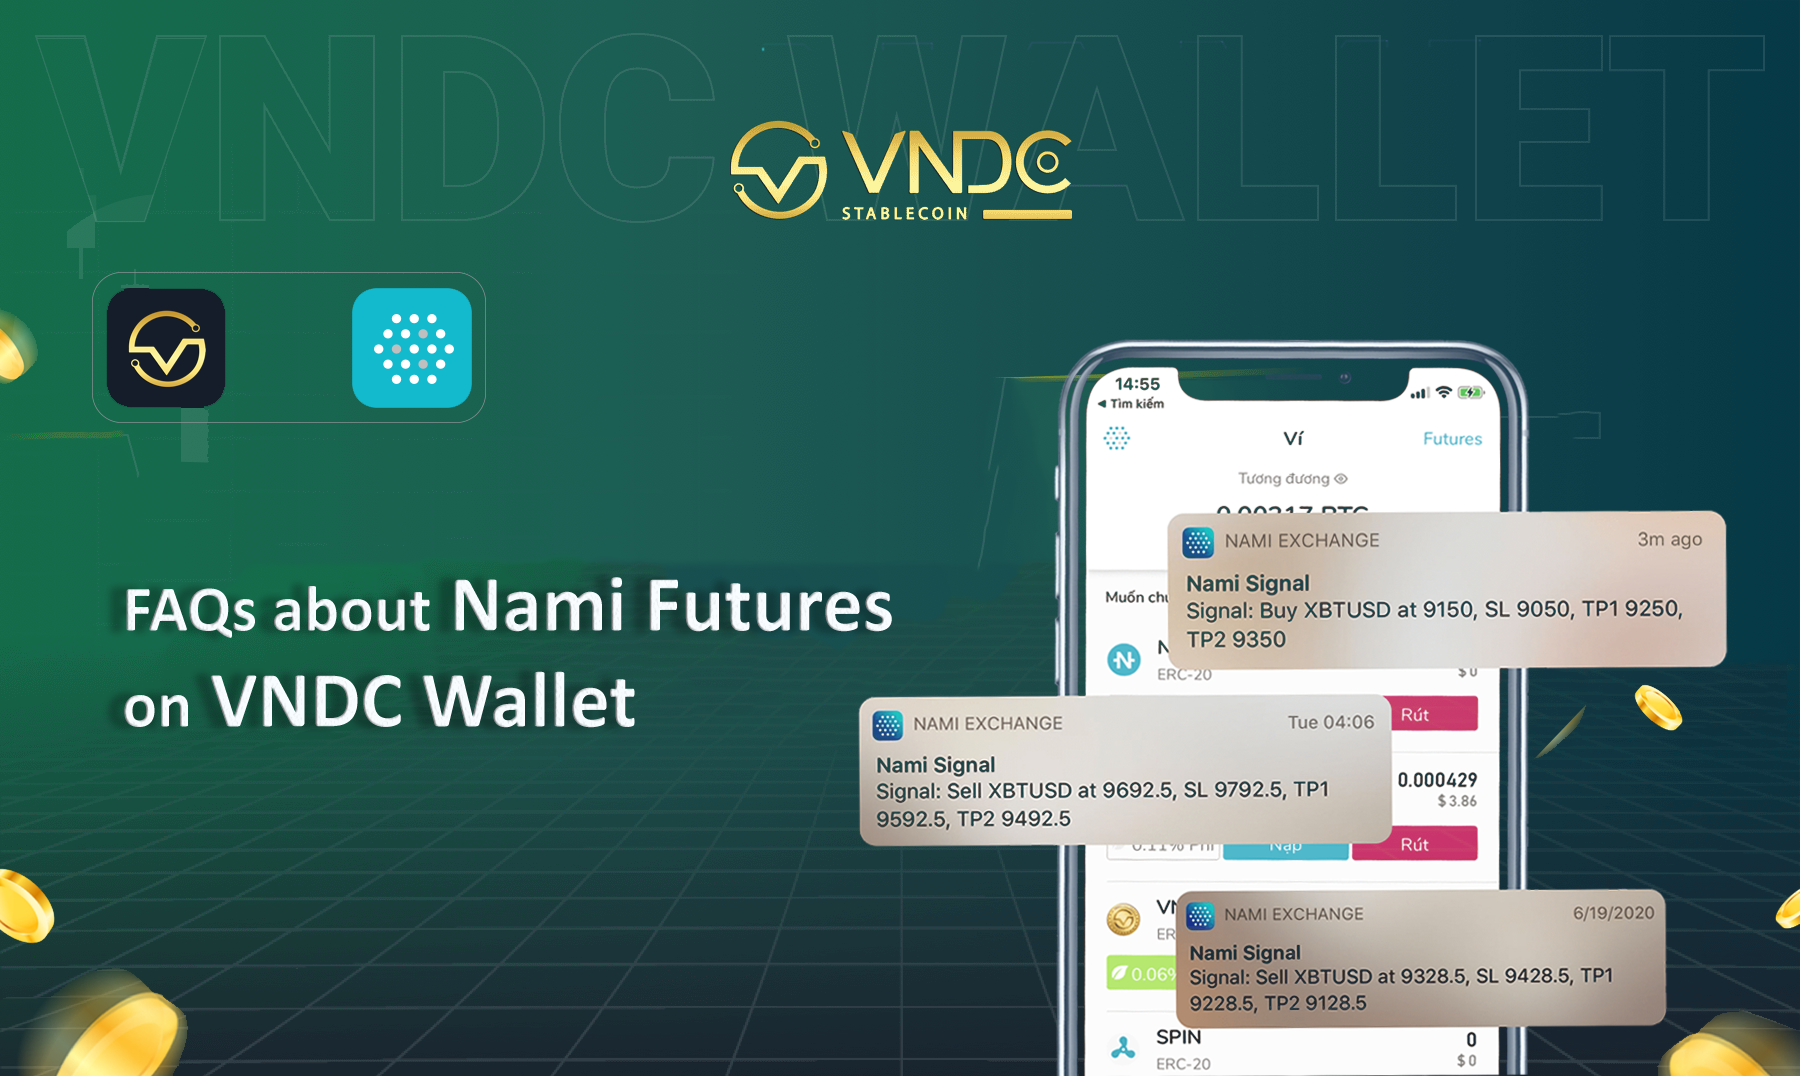 FAQ about investment with Nami Futures on VNDC Wallet